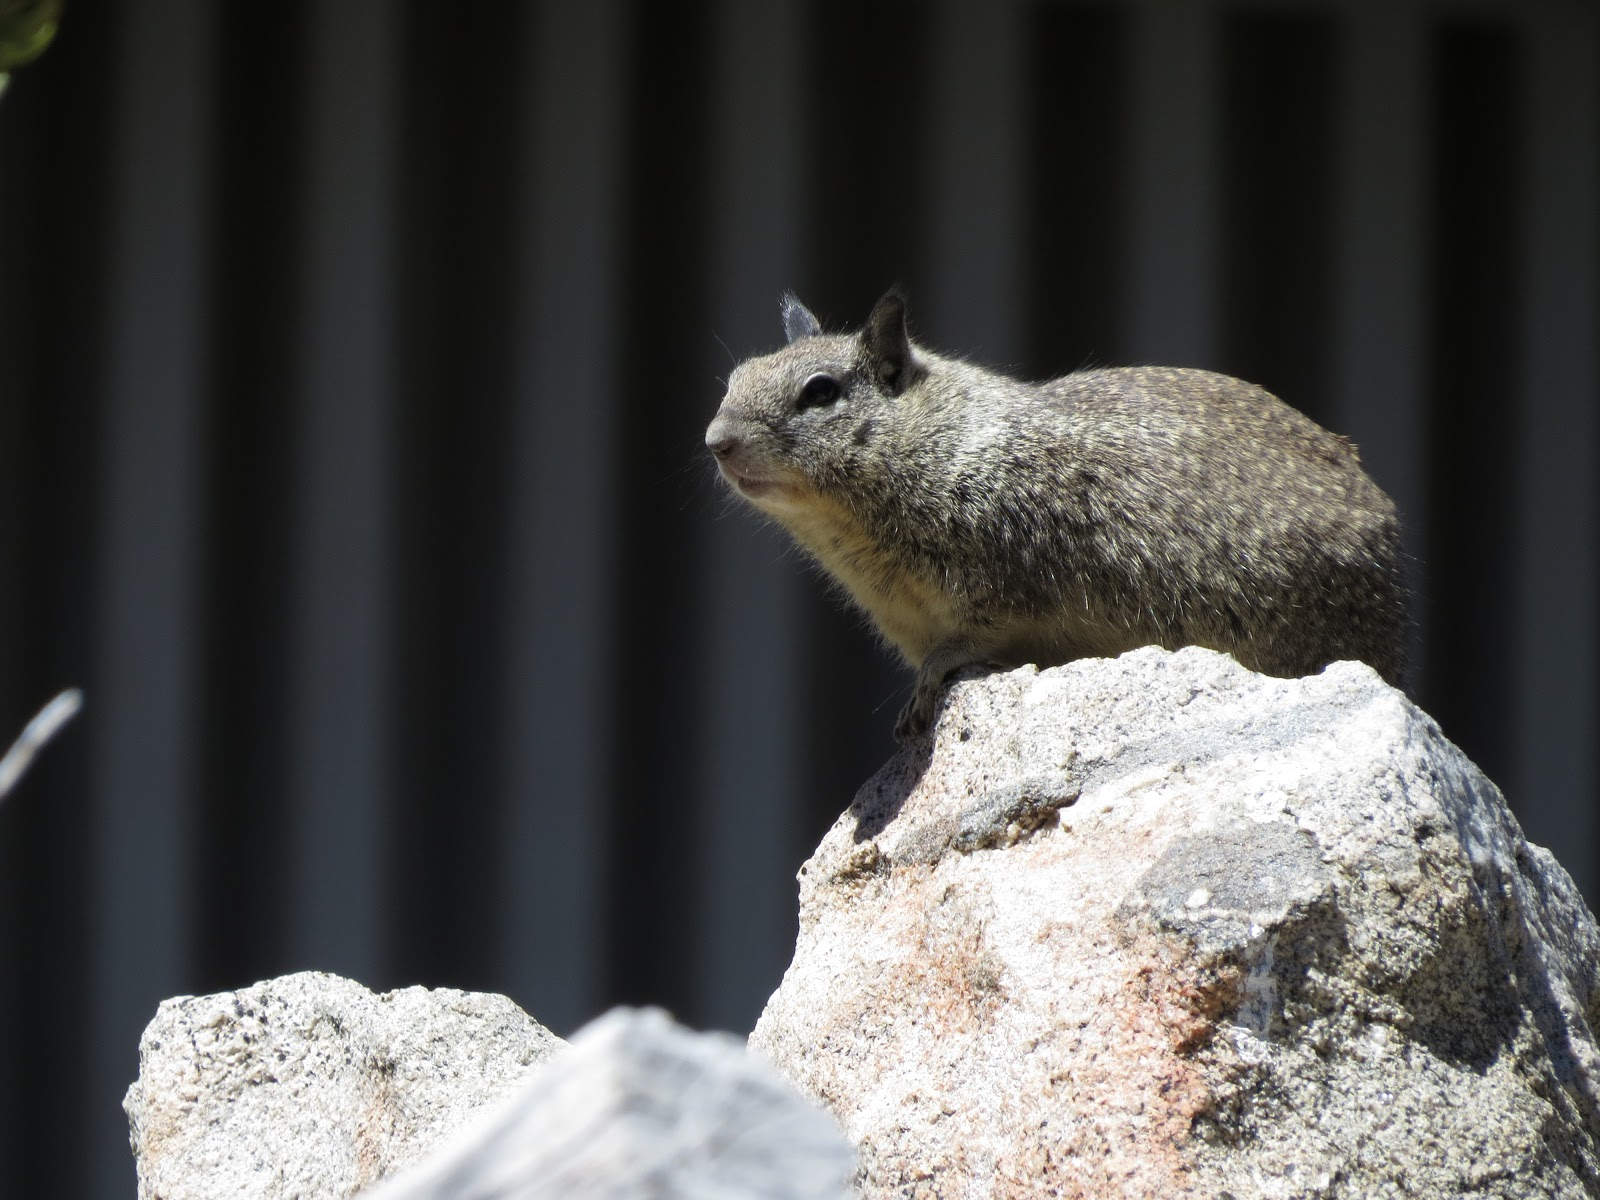 Palm Springs Aerial Tramway mountain squirrel